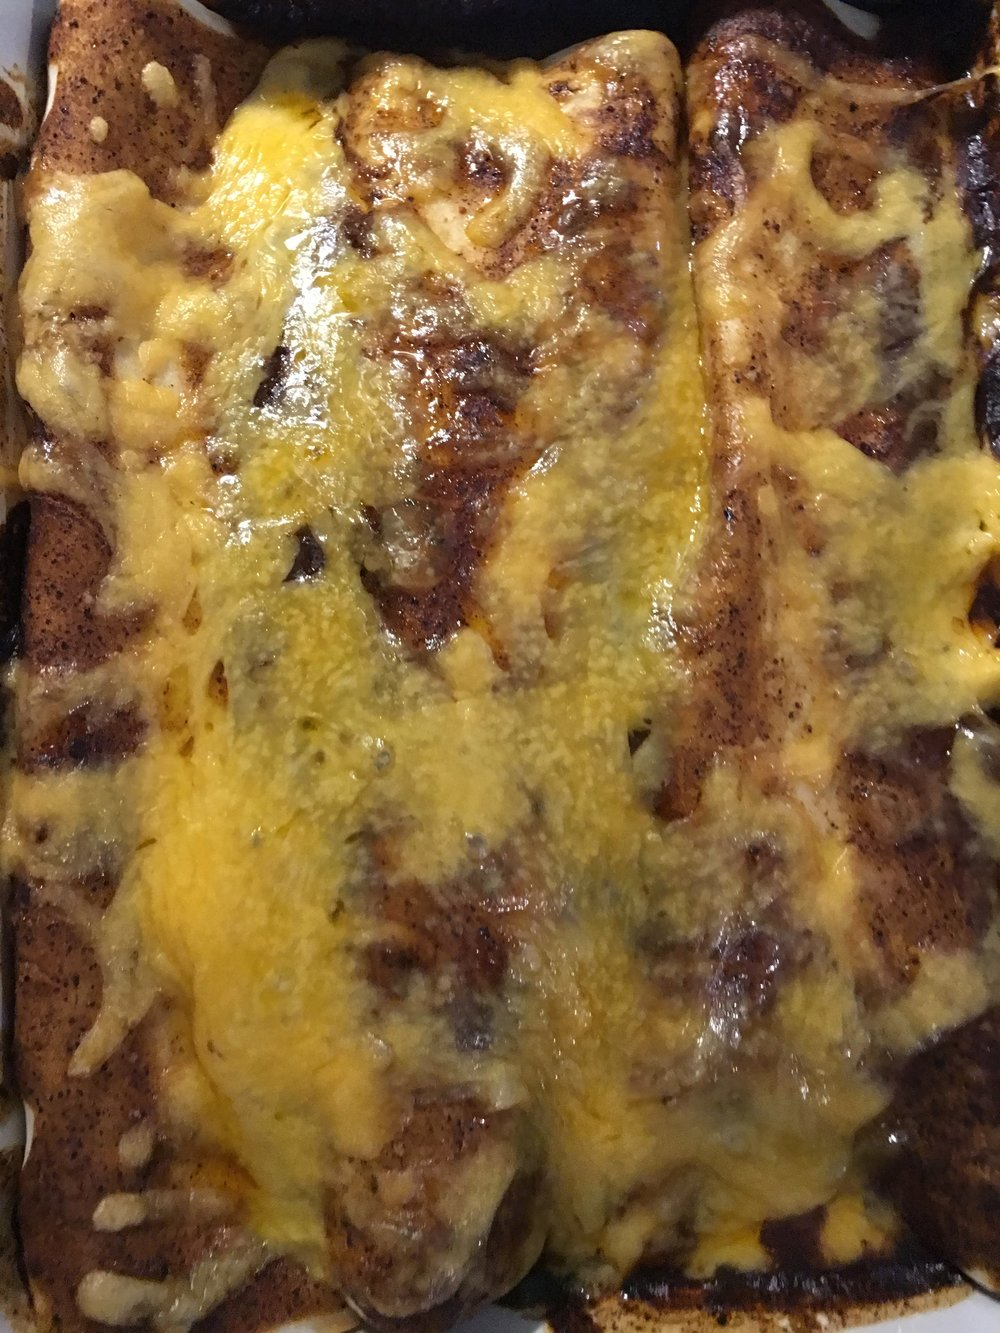 Not pretty AT ALL, but pretty tasty nonetheless. Fab enchiladas with  homemade sauce . I added in a little pureed chipotle in adobo to give it a little extra kick. In an effort to stock the freezer, I quadrupled the sauce recipe and froze a pan of assembled and baked enchiladas.